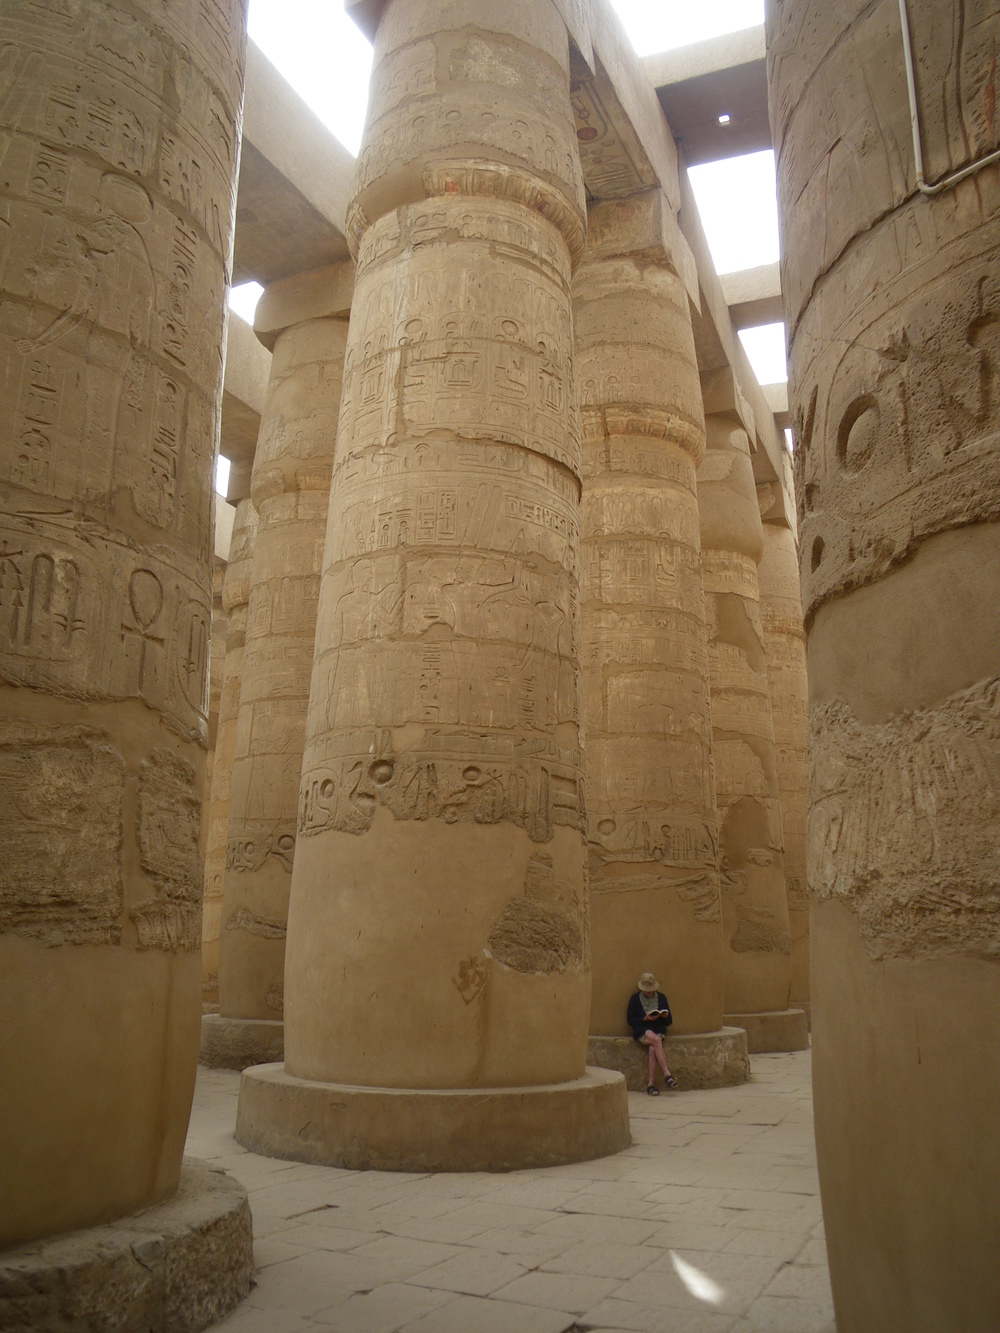 Dr. Lloyd Dickie in the Hypostyle Hall of the Temple of Karnak, Luxor, Egypt.